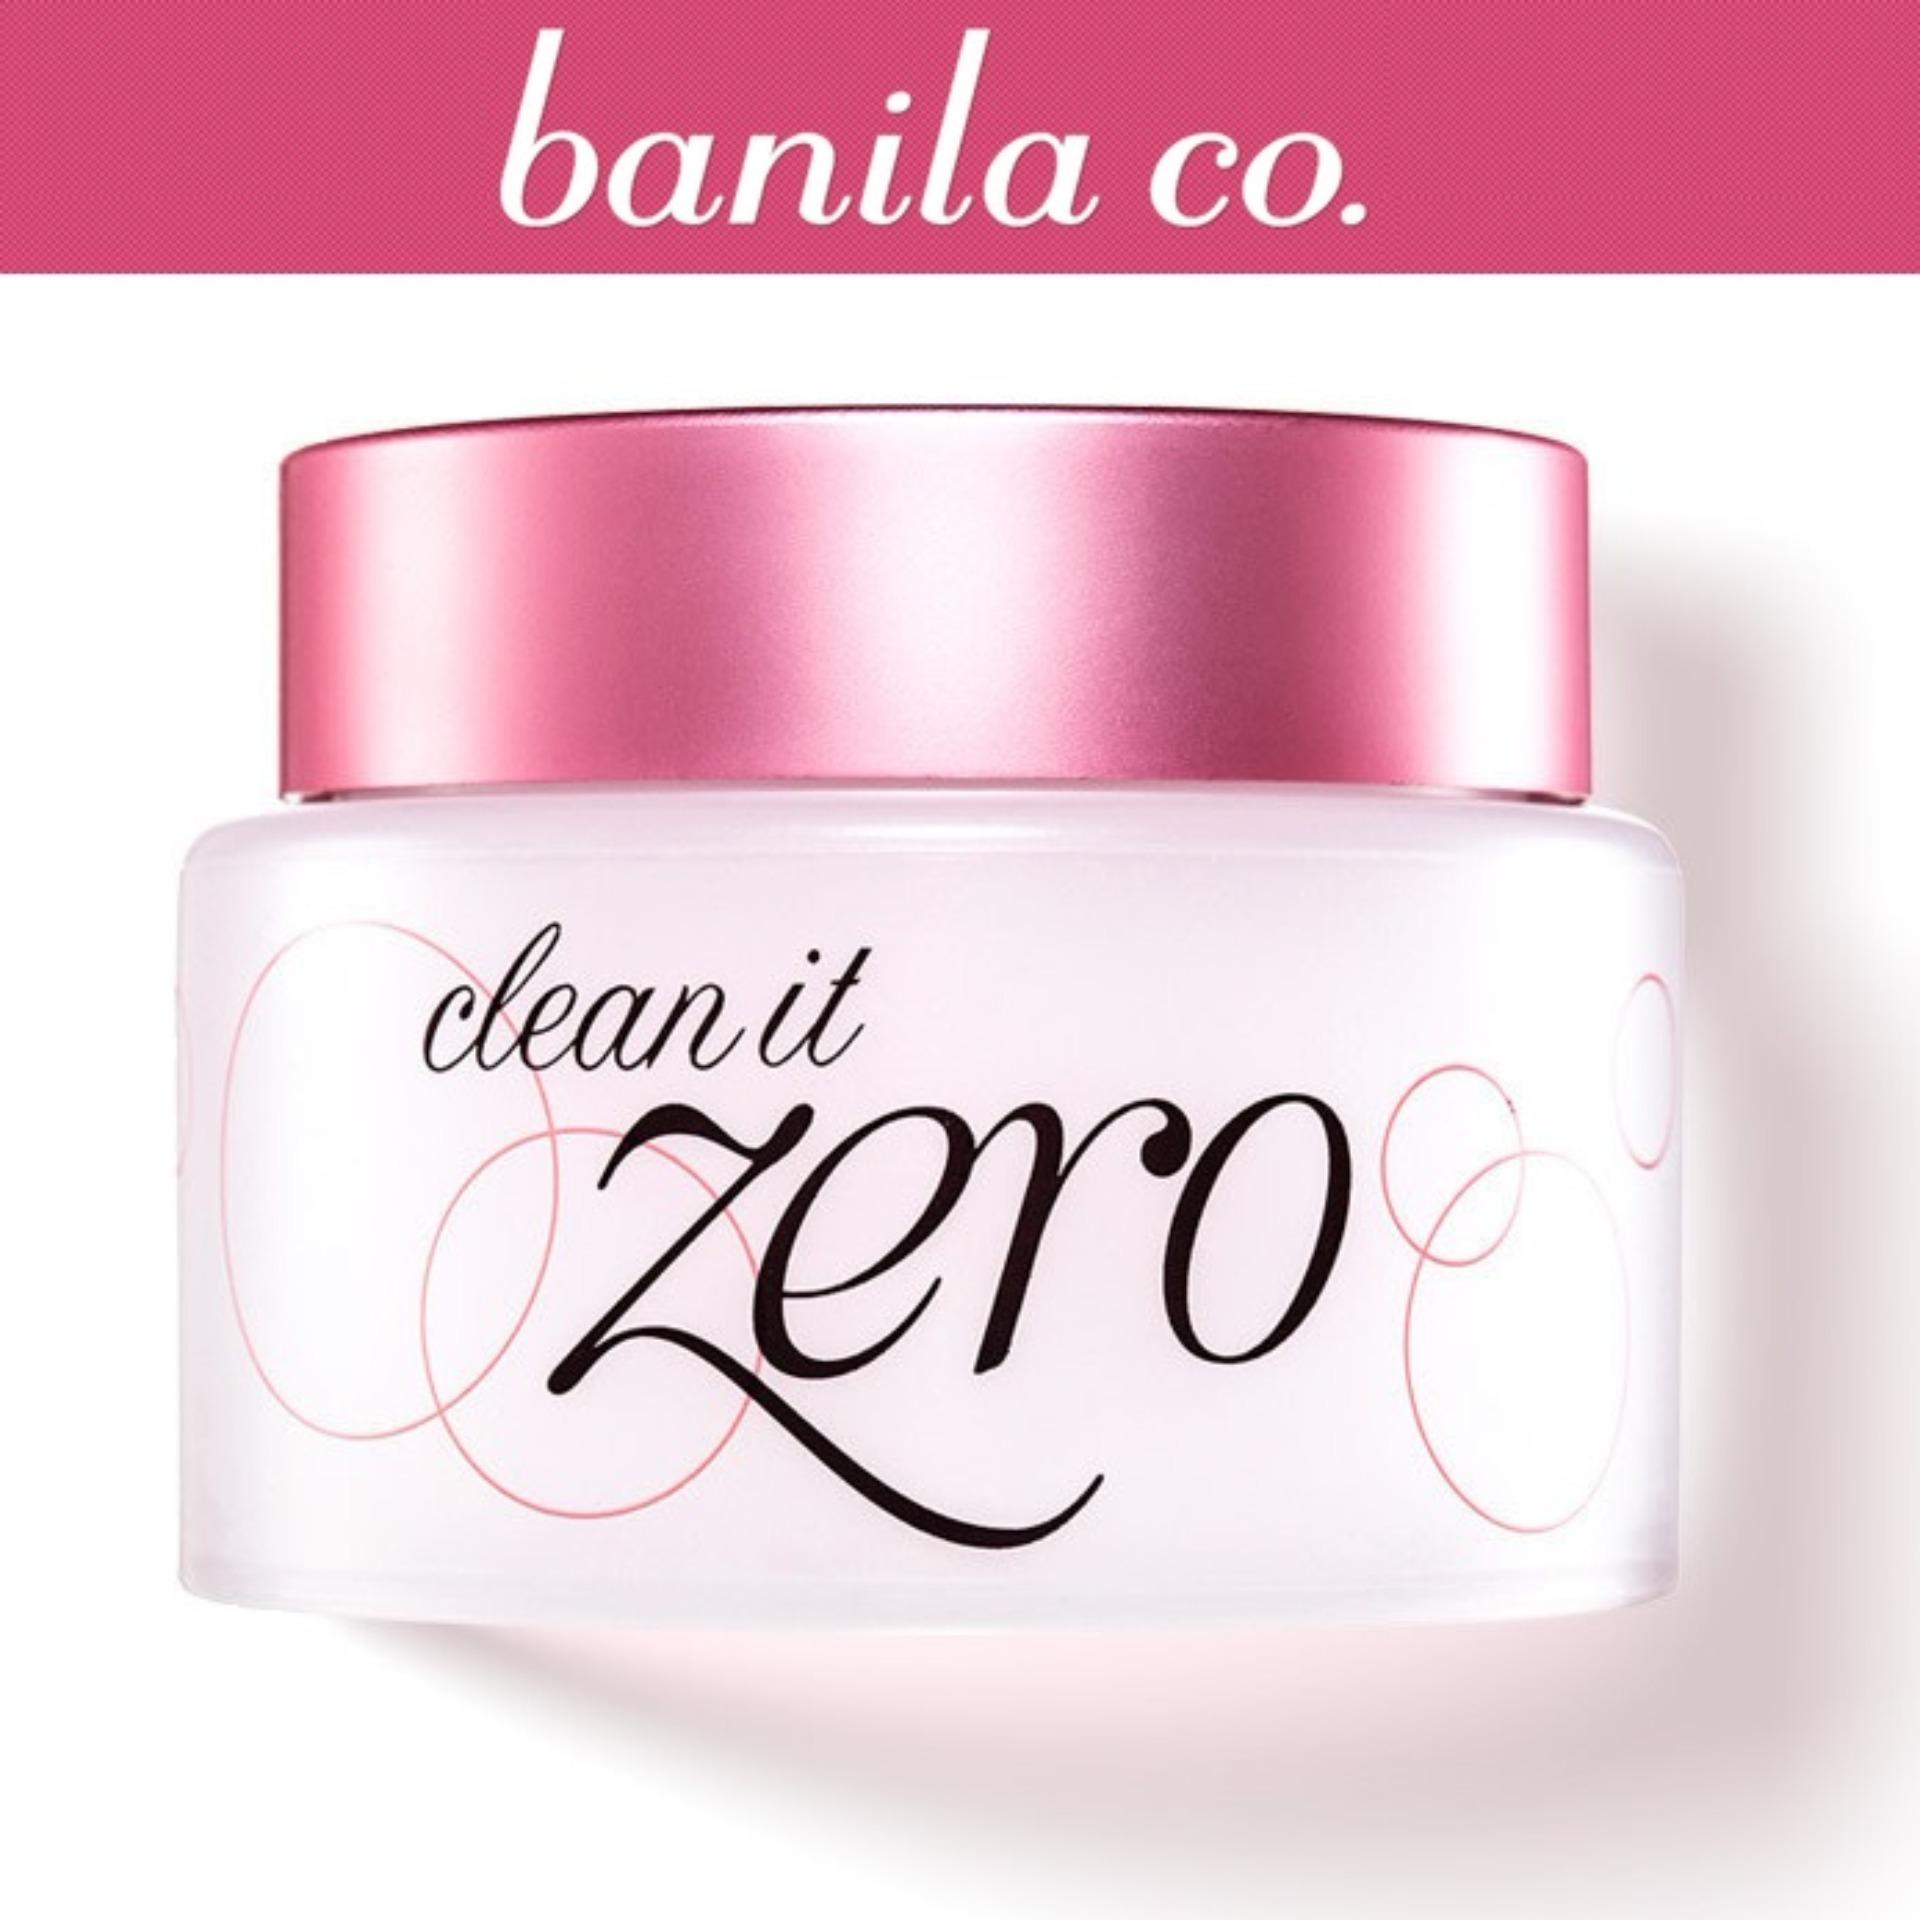 How To Buy Banila Co Clean It Zero 100Ml